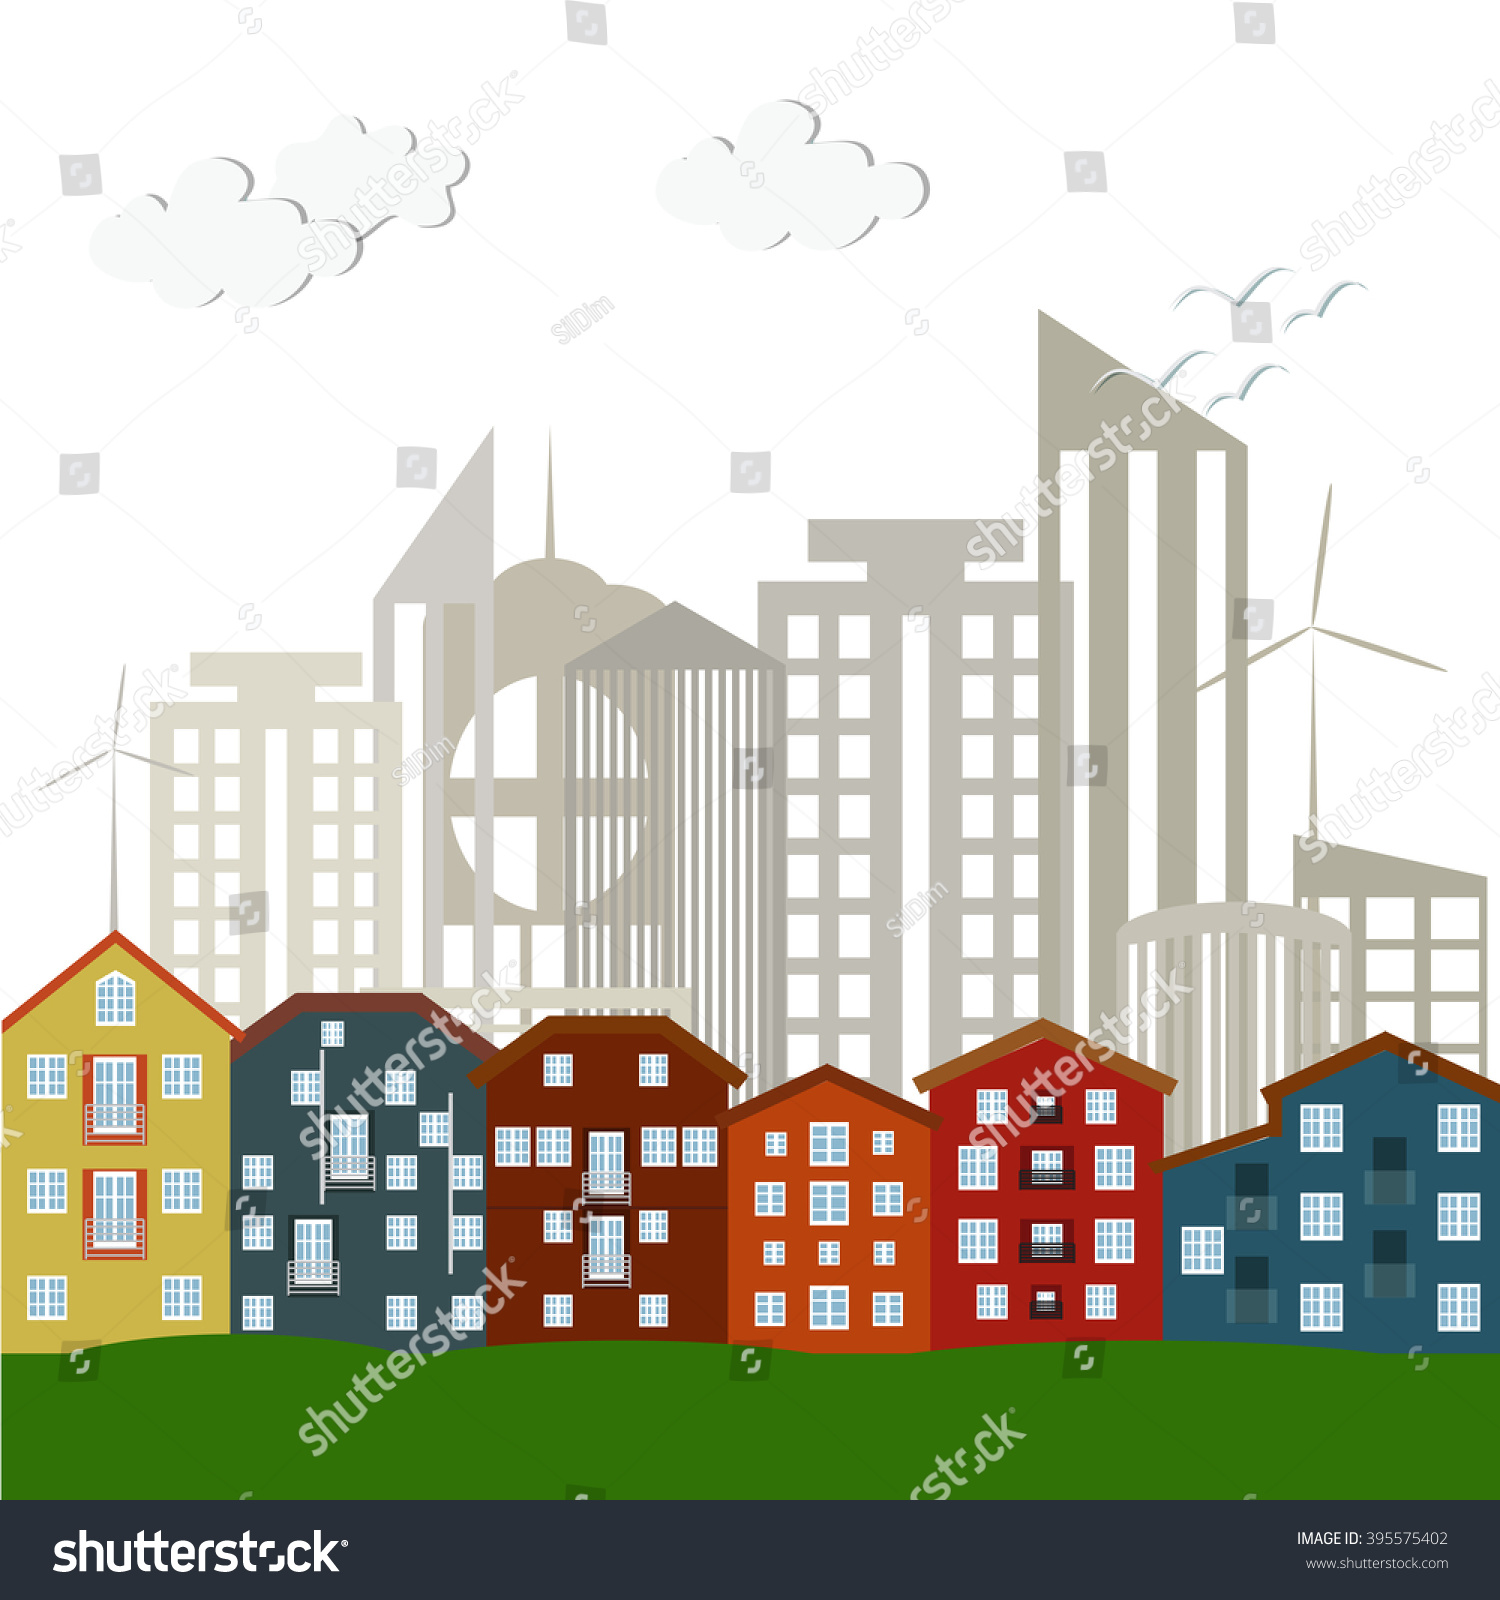 Modern Scandinavian Houses Colorful City Skyscrapers Stock Vector